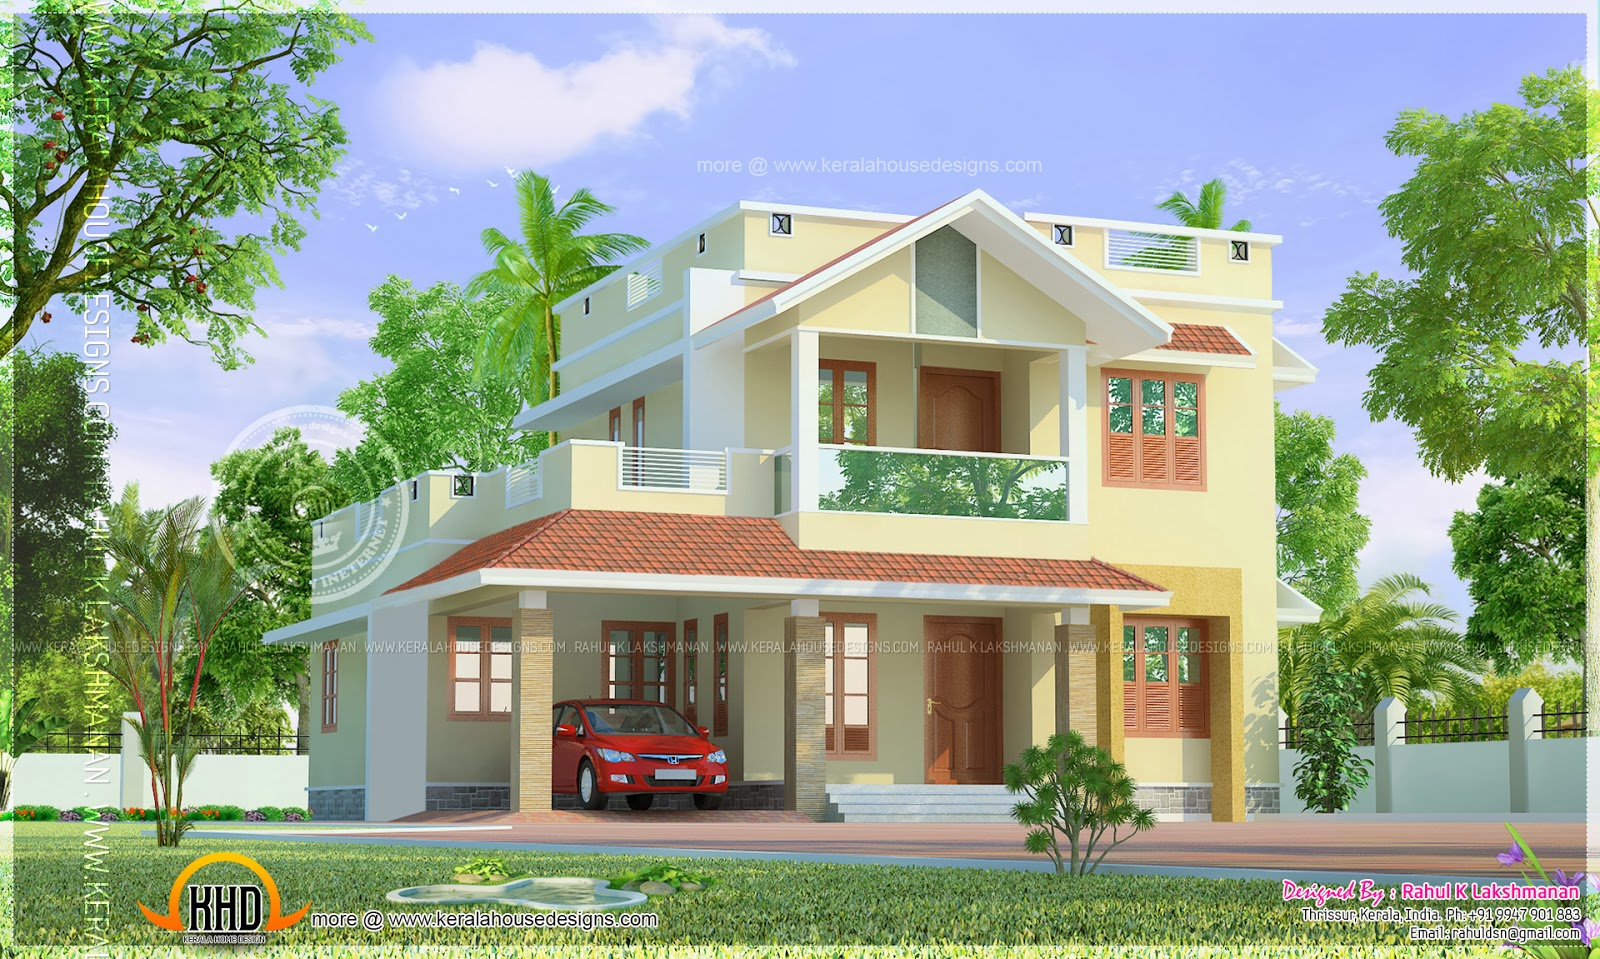 Cute little two storied home design kerala home design for House design in small area